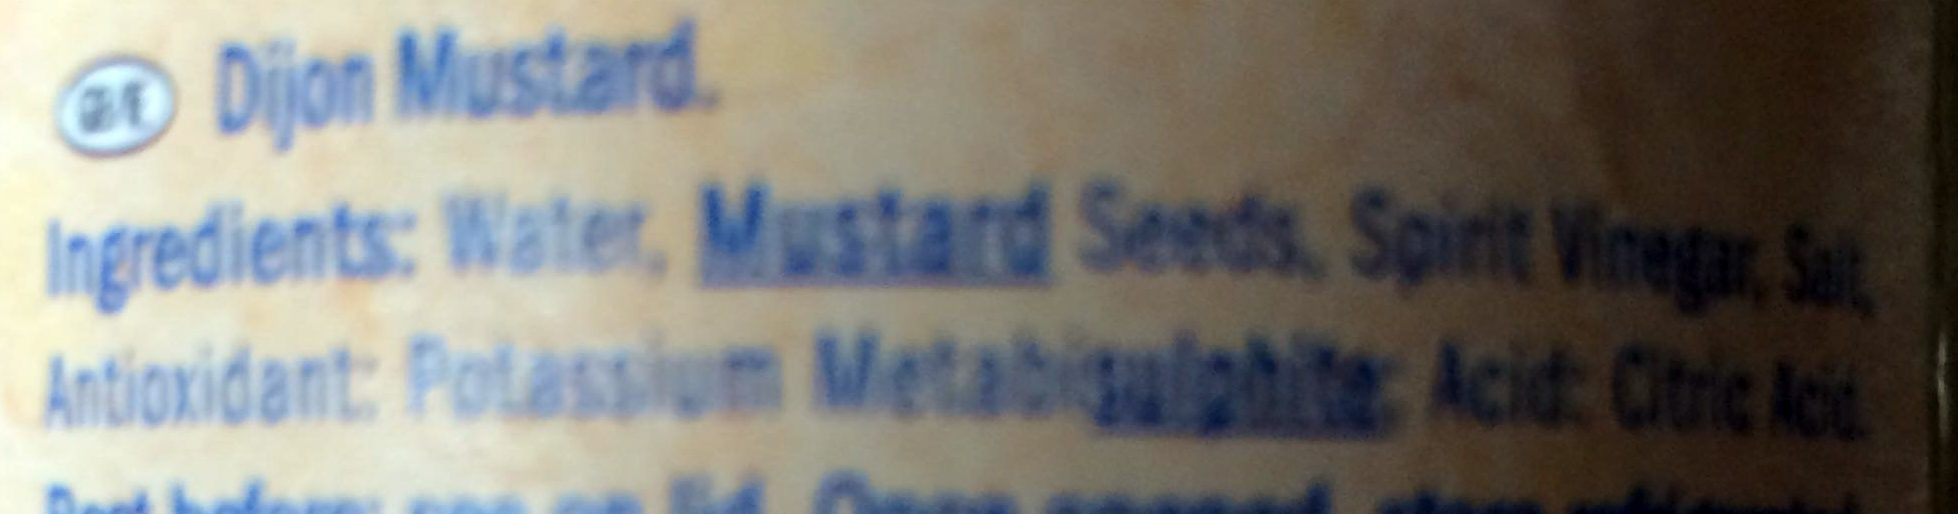 French Mustard - Ingredients